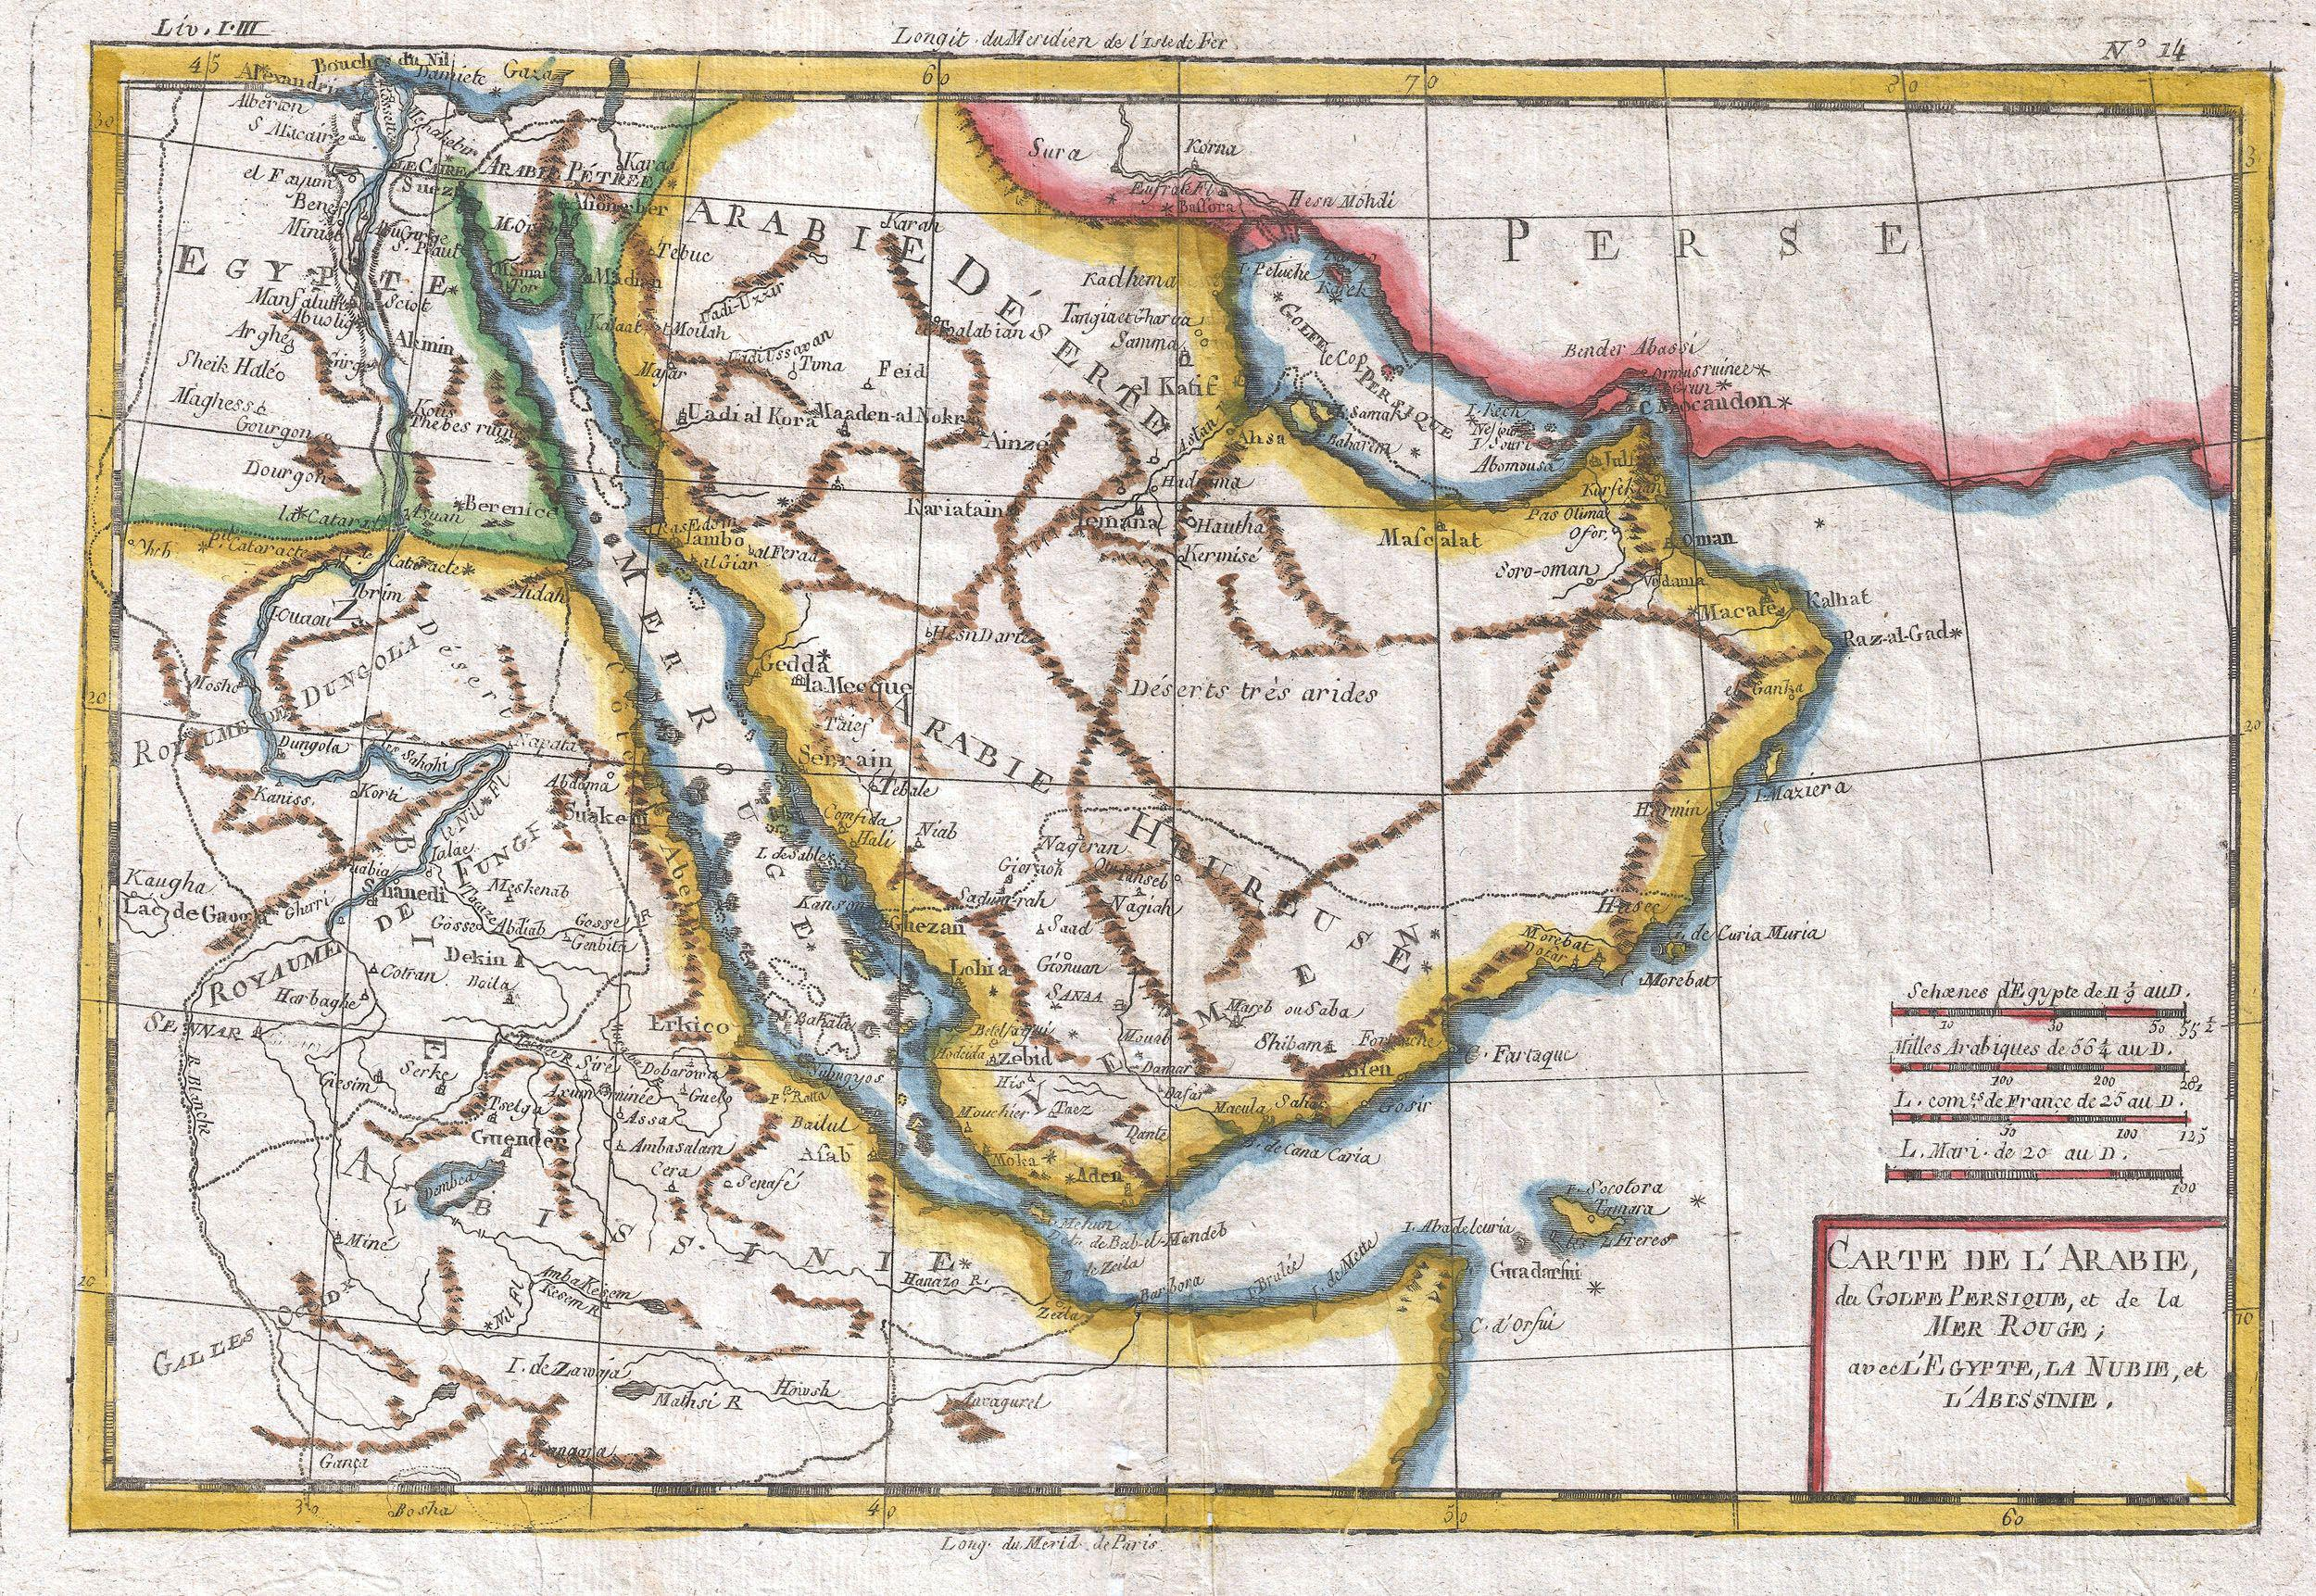 File1780 raynal and bonne map of arabia and abyssinia file1780 raynal and bonne map of arabia and abyssinia geographicus arabie gumiabroncs Image collections